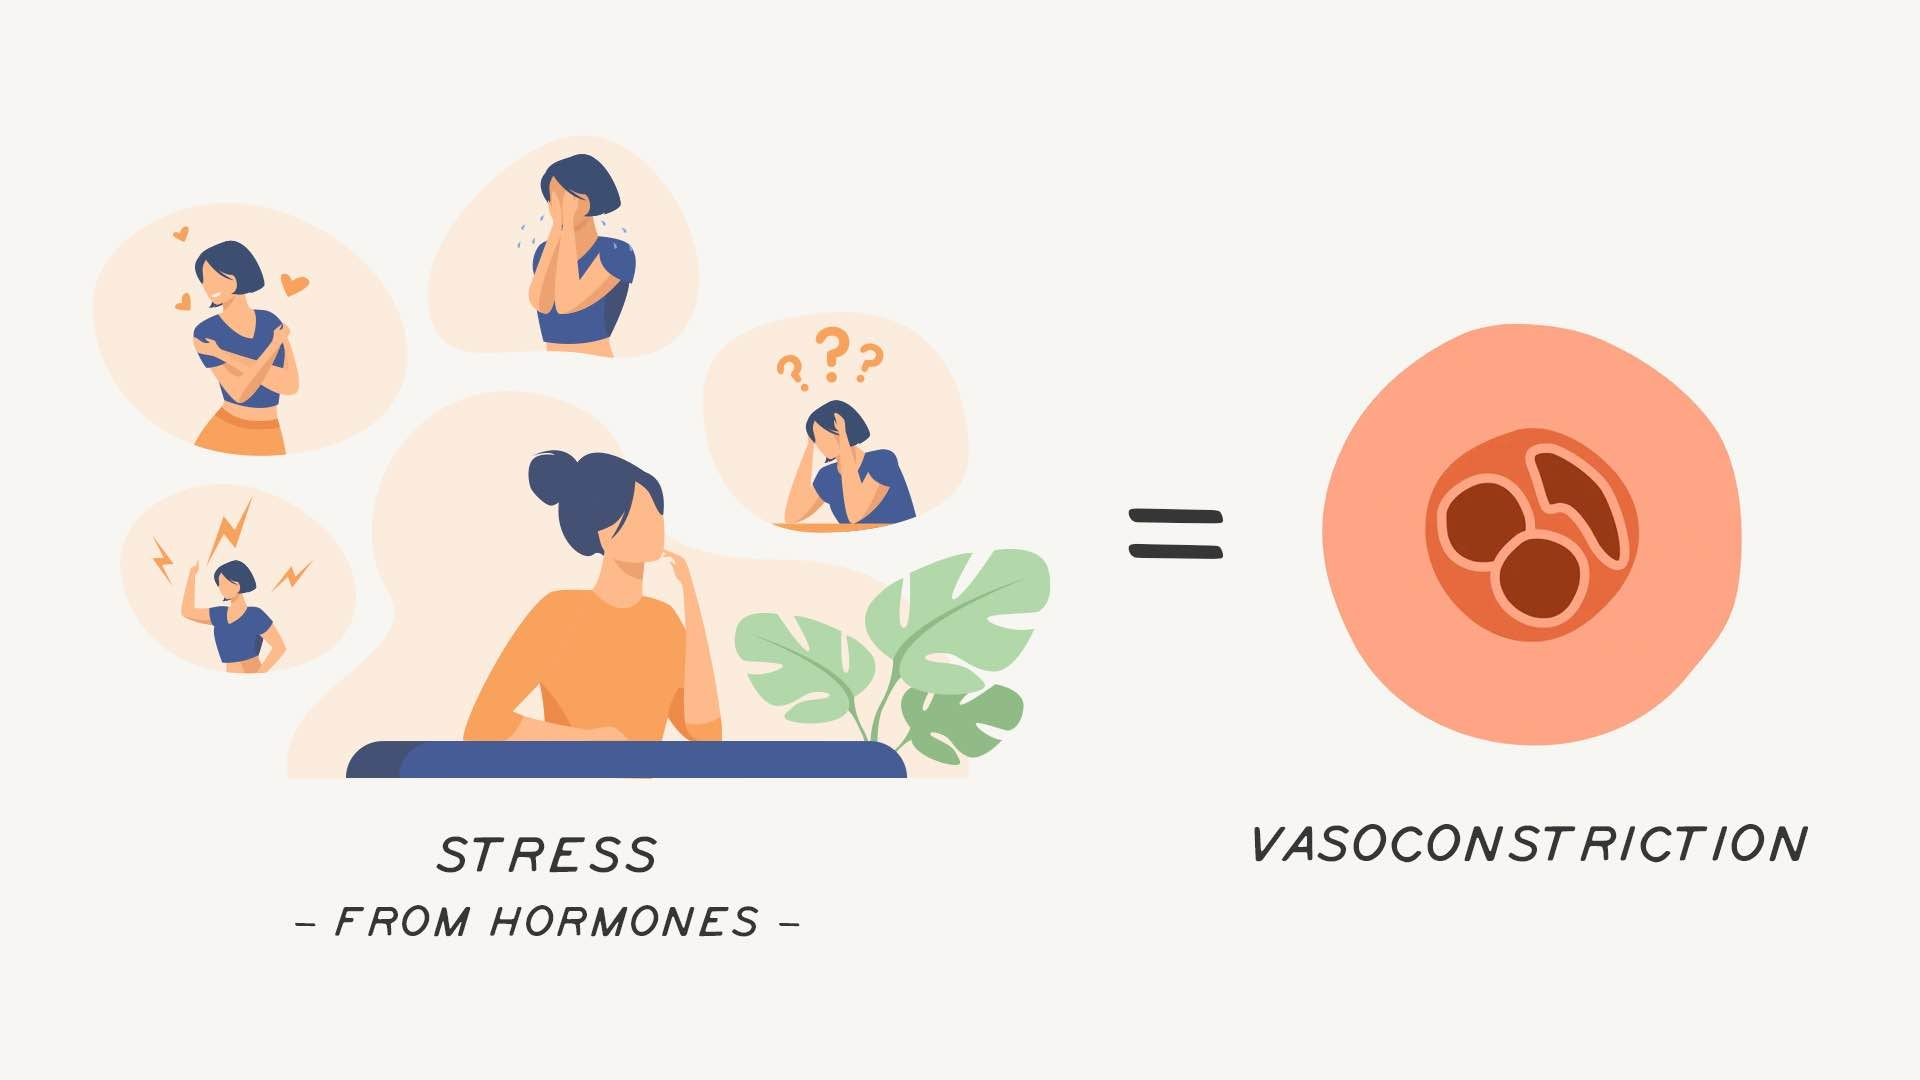 foods that cause vasoconstriction